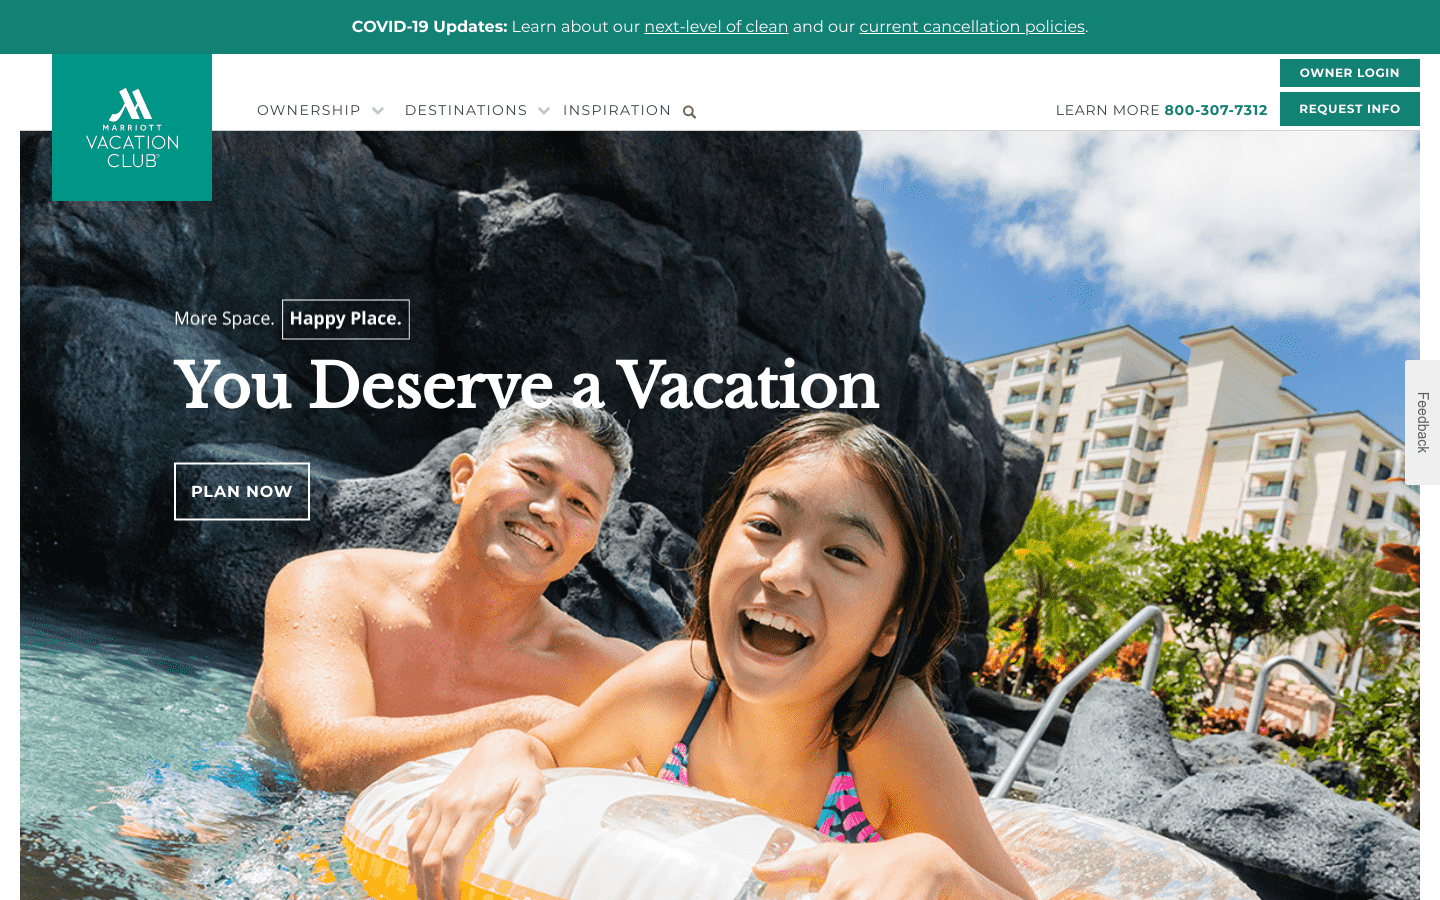 Marriott Vacation Club reviews and complaints